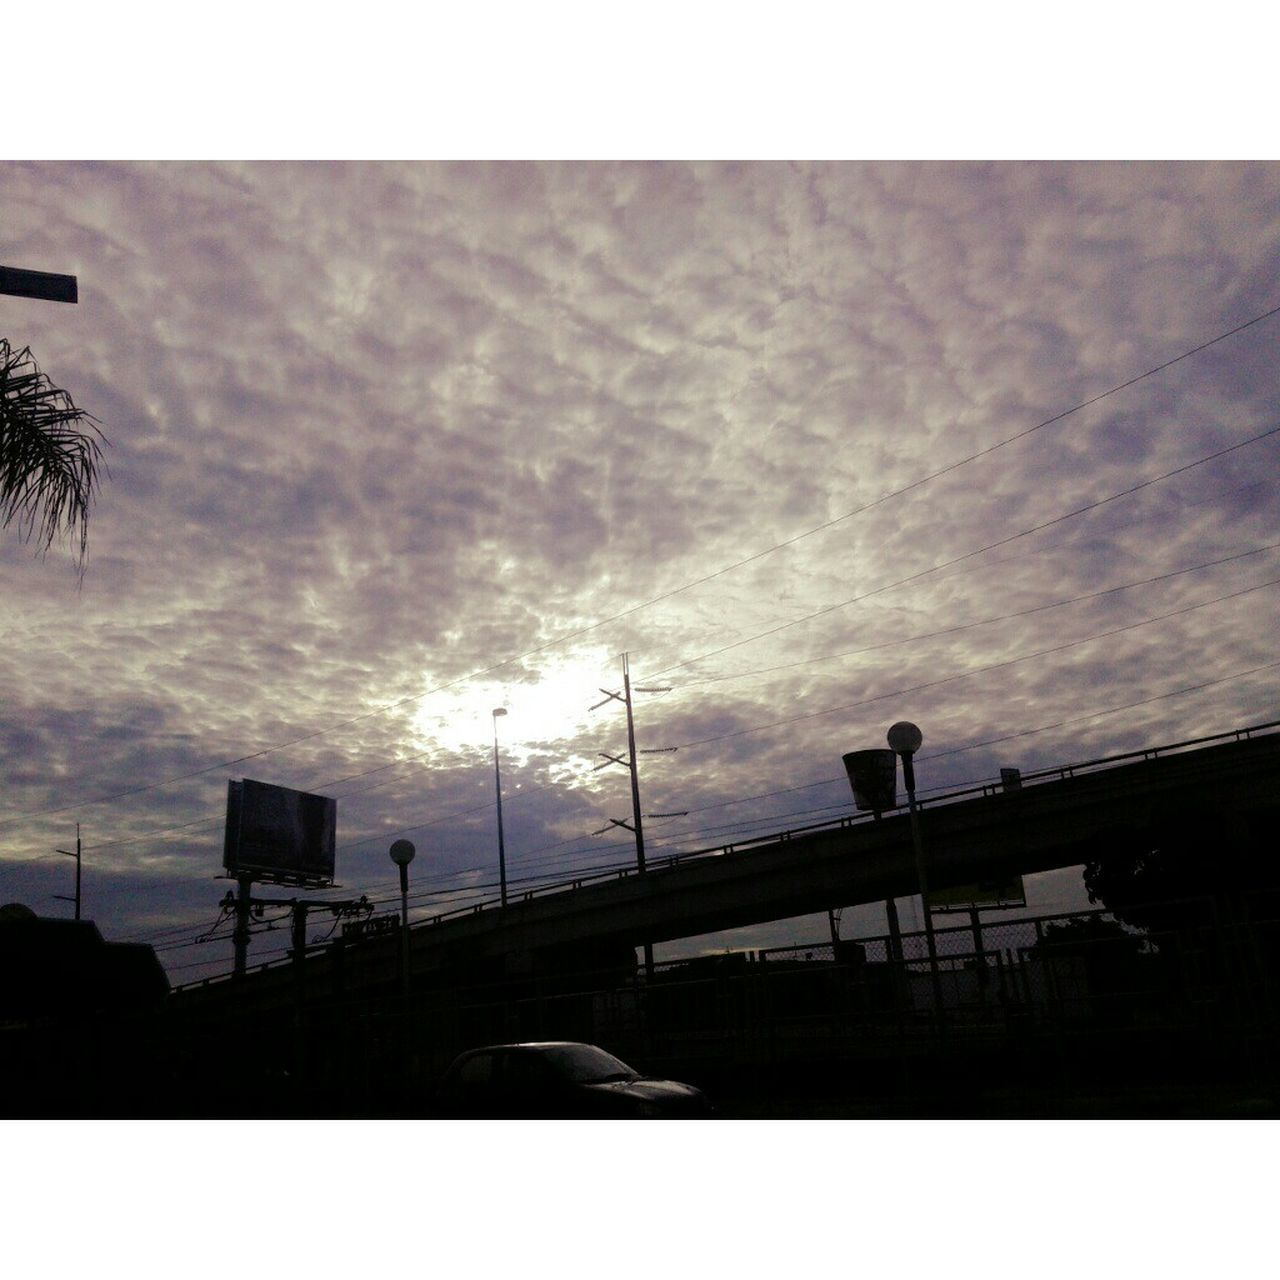 silhouette, sky, cloud - sky, transportation, low angle view, built structure, architecture, outdoors, sunset, nature, no people, day, beauty in nature